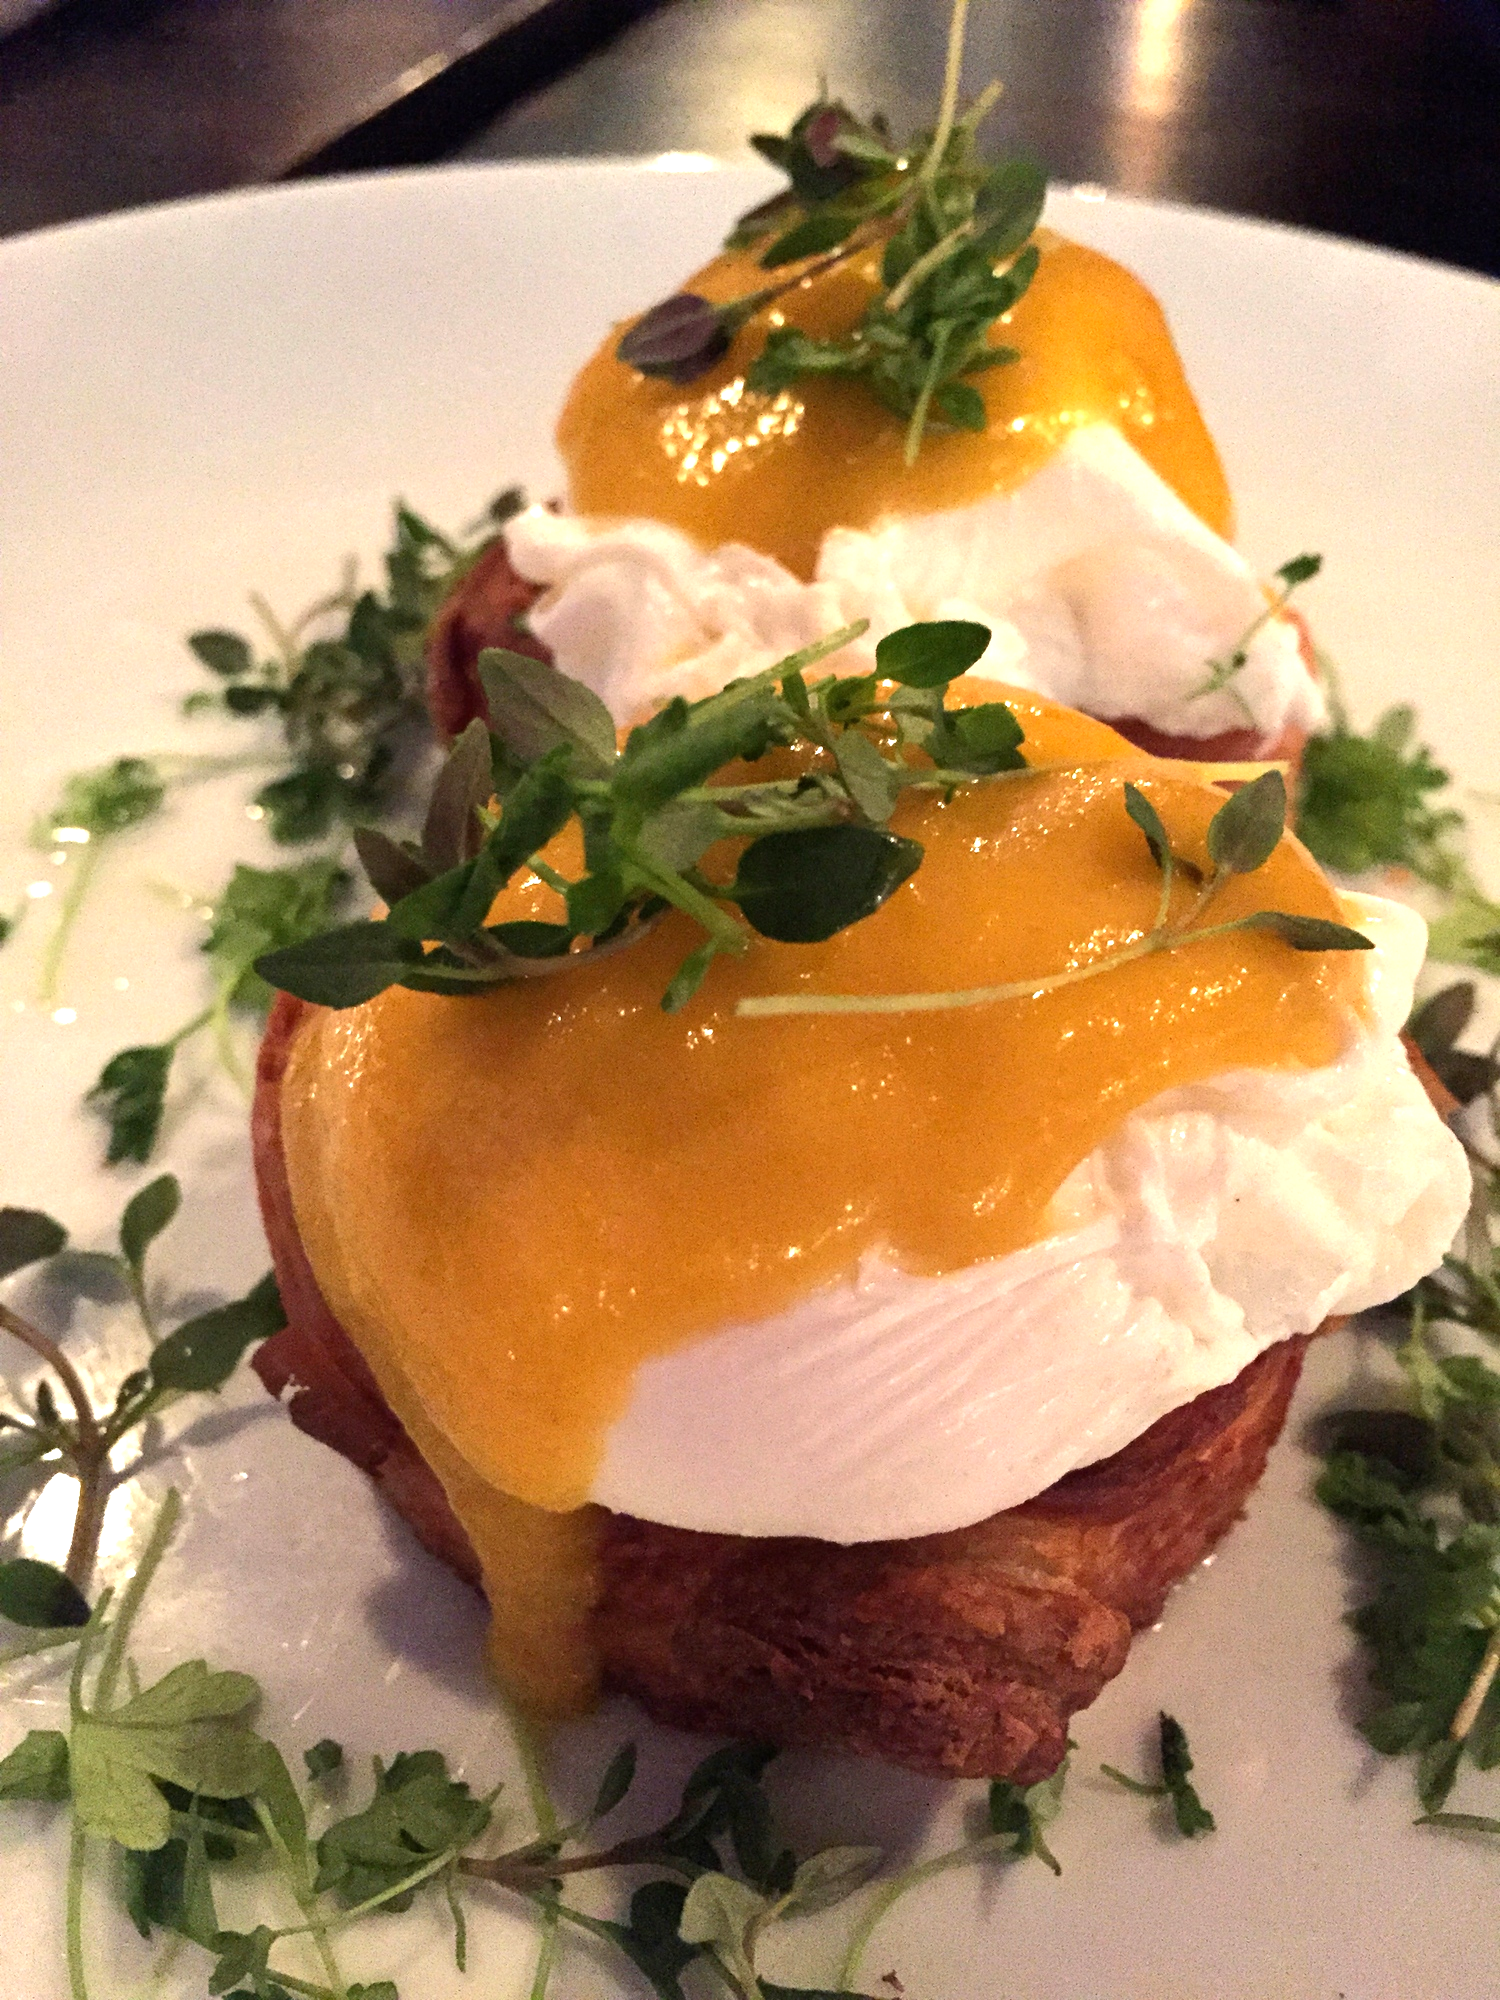 Benedict and Cumberland, two slices of our Cumberland roll topped with two poached organic pastured eggs, yellow tomato béarnaise surrounded by an herb salad.